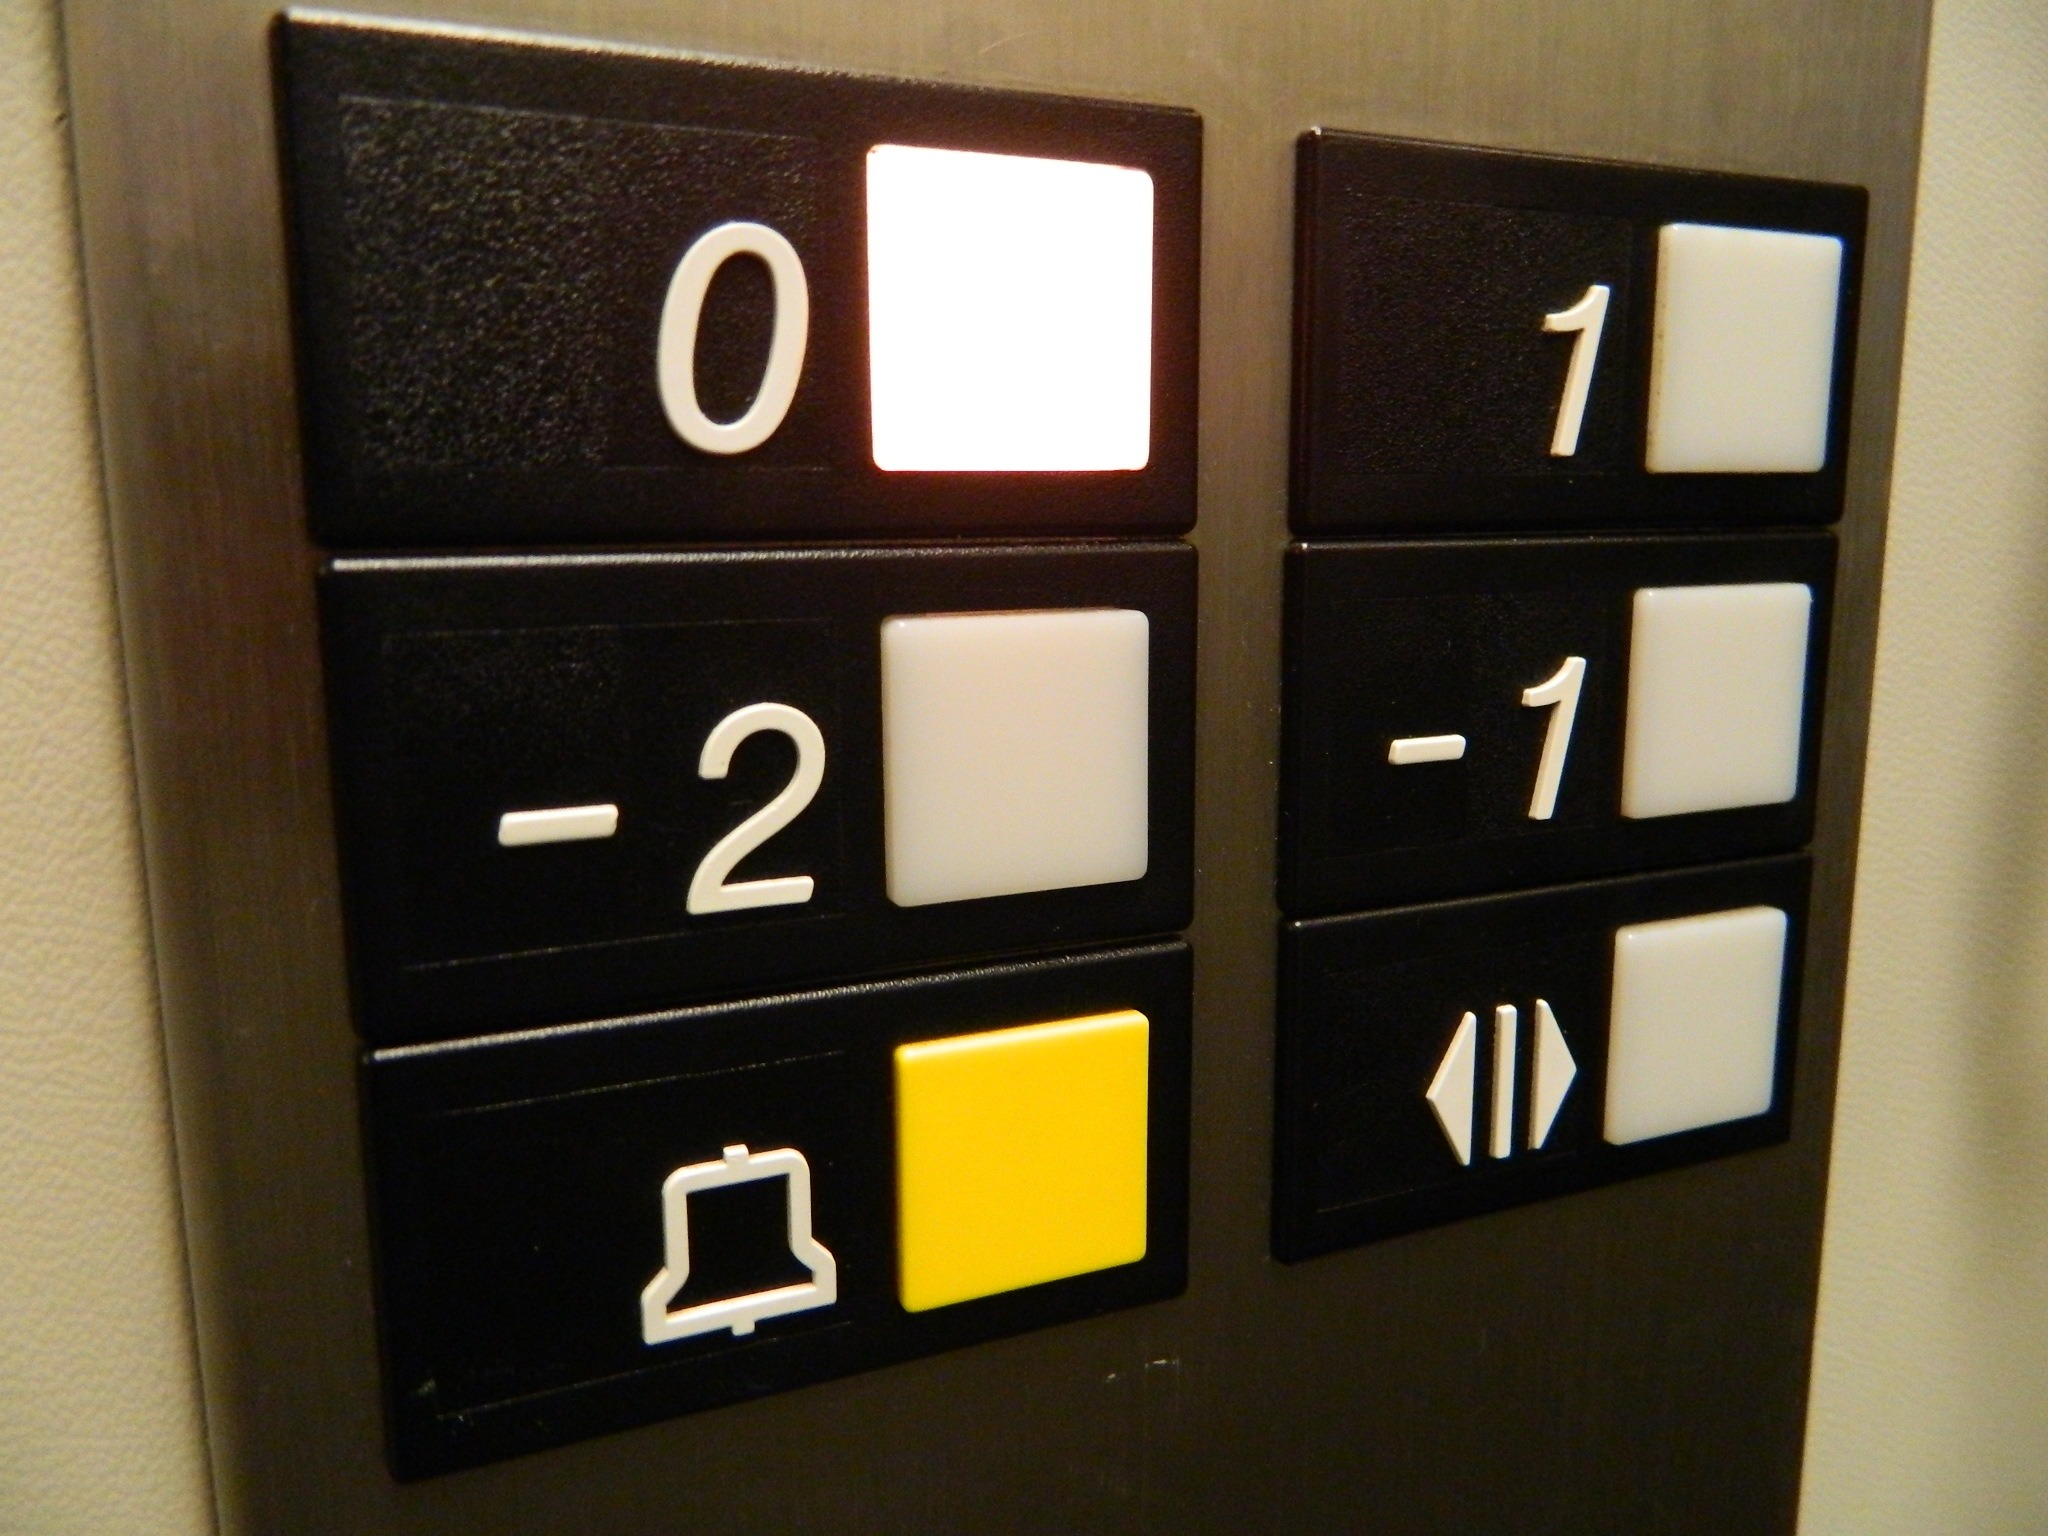 ground floor elevator button lit